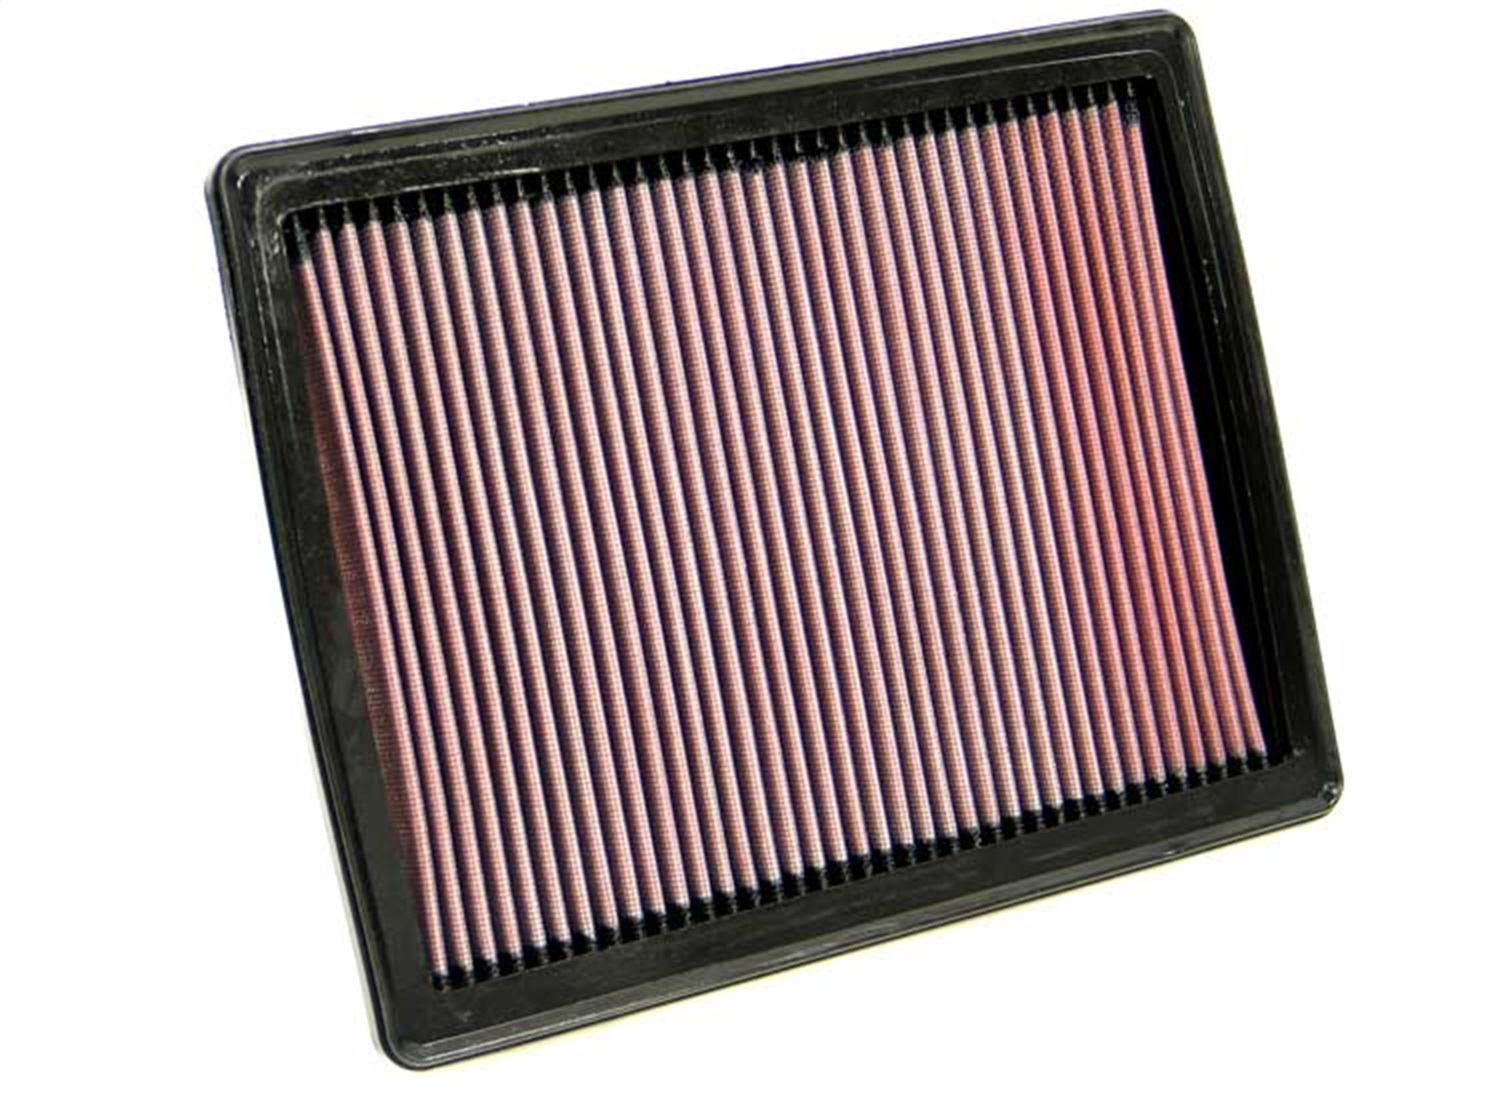 K&N Filters 33-2314 Air Filter Fits 05-06 GTO 33-2314